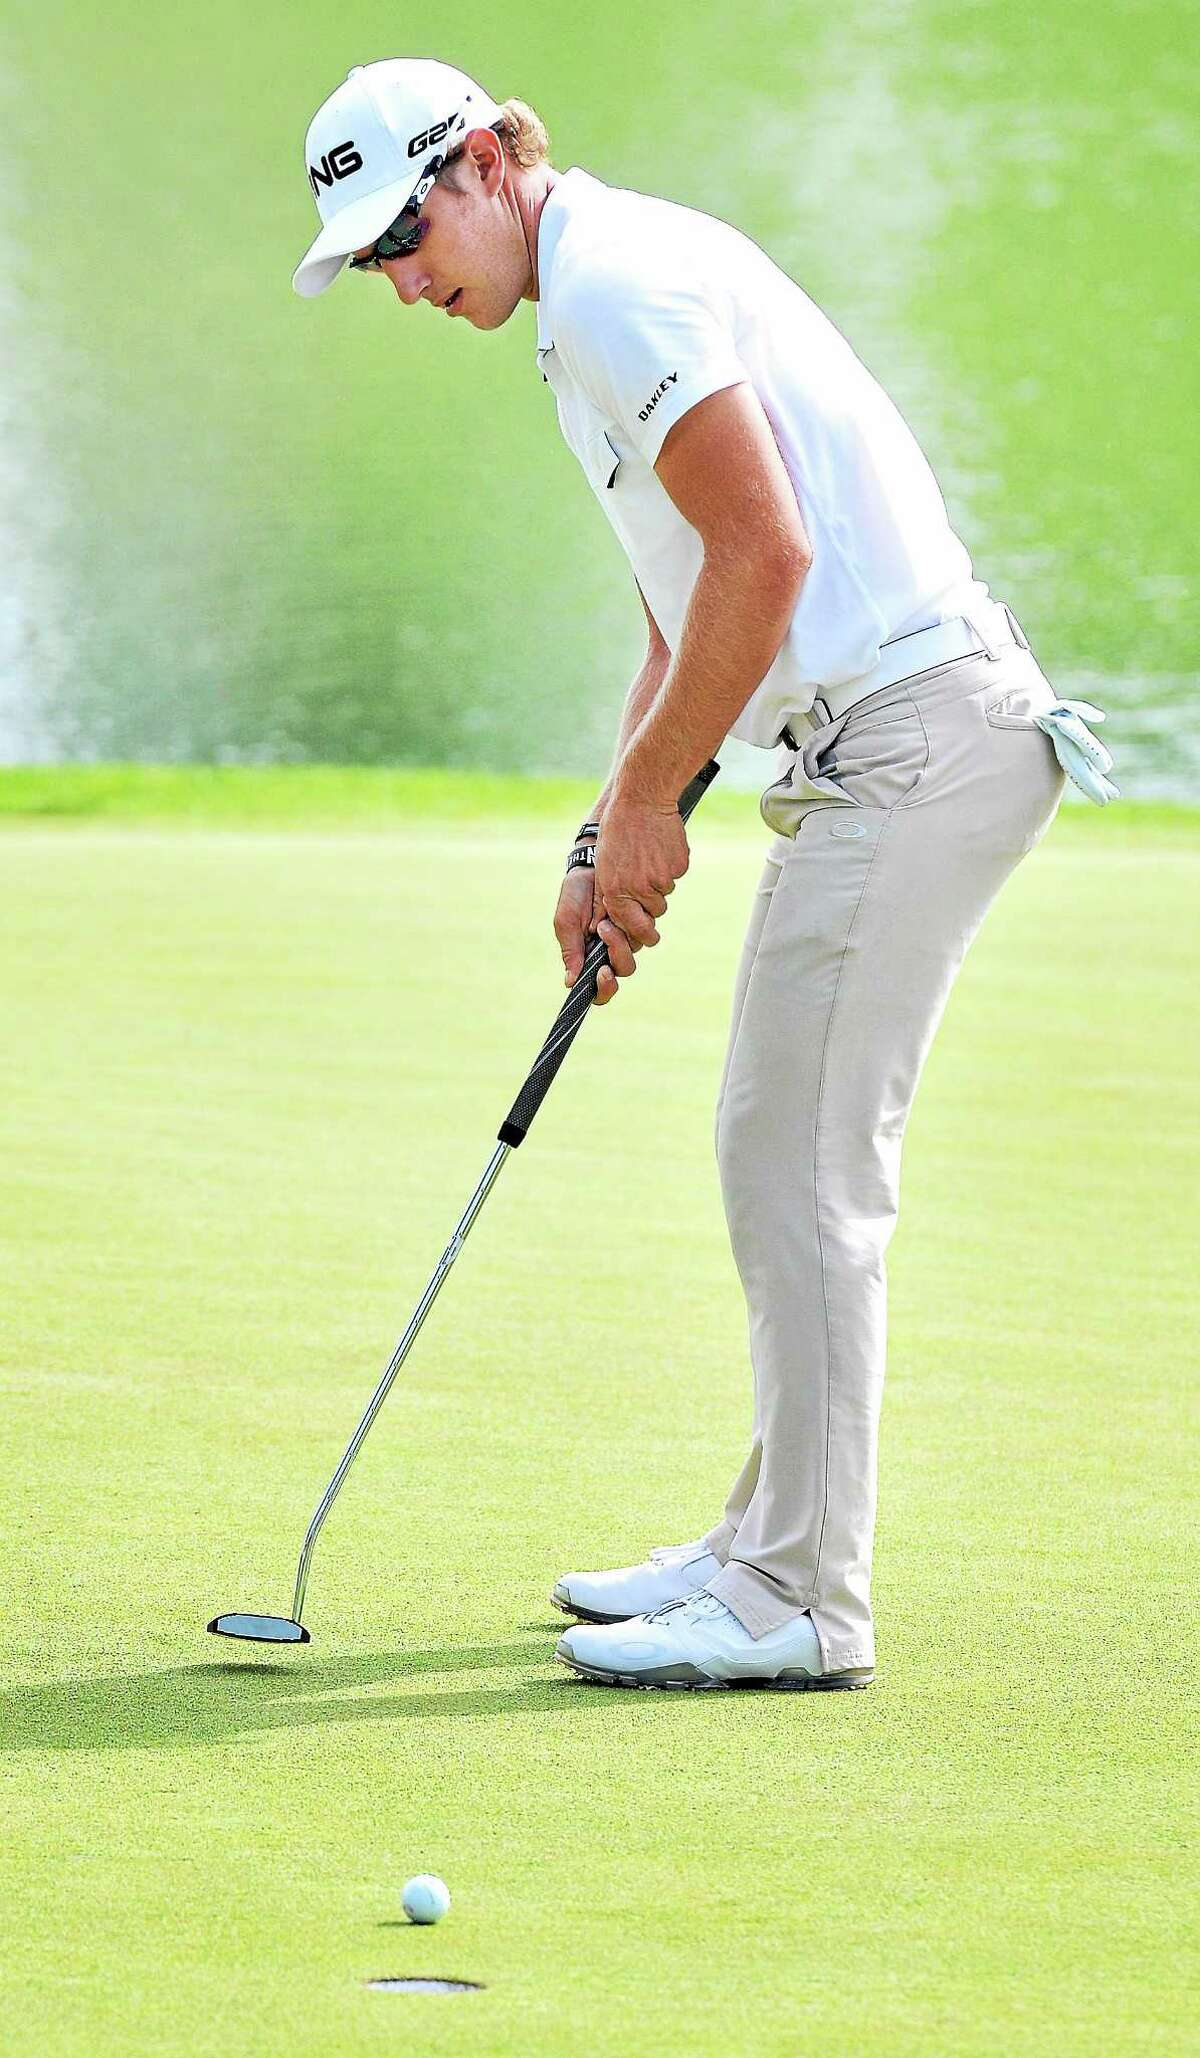 Derek Ernst putts on the 17th hole during the second round of the Travelers Championship on Friday in Cromwell.